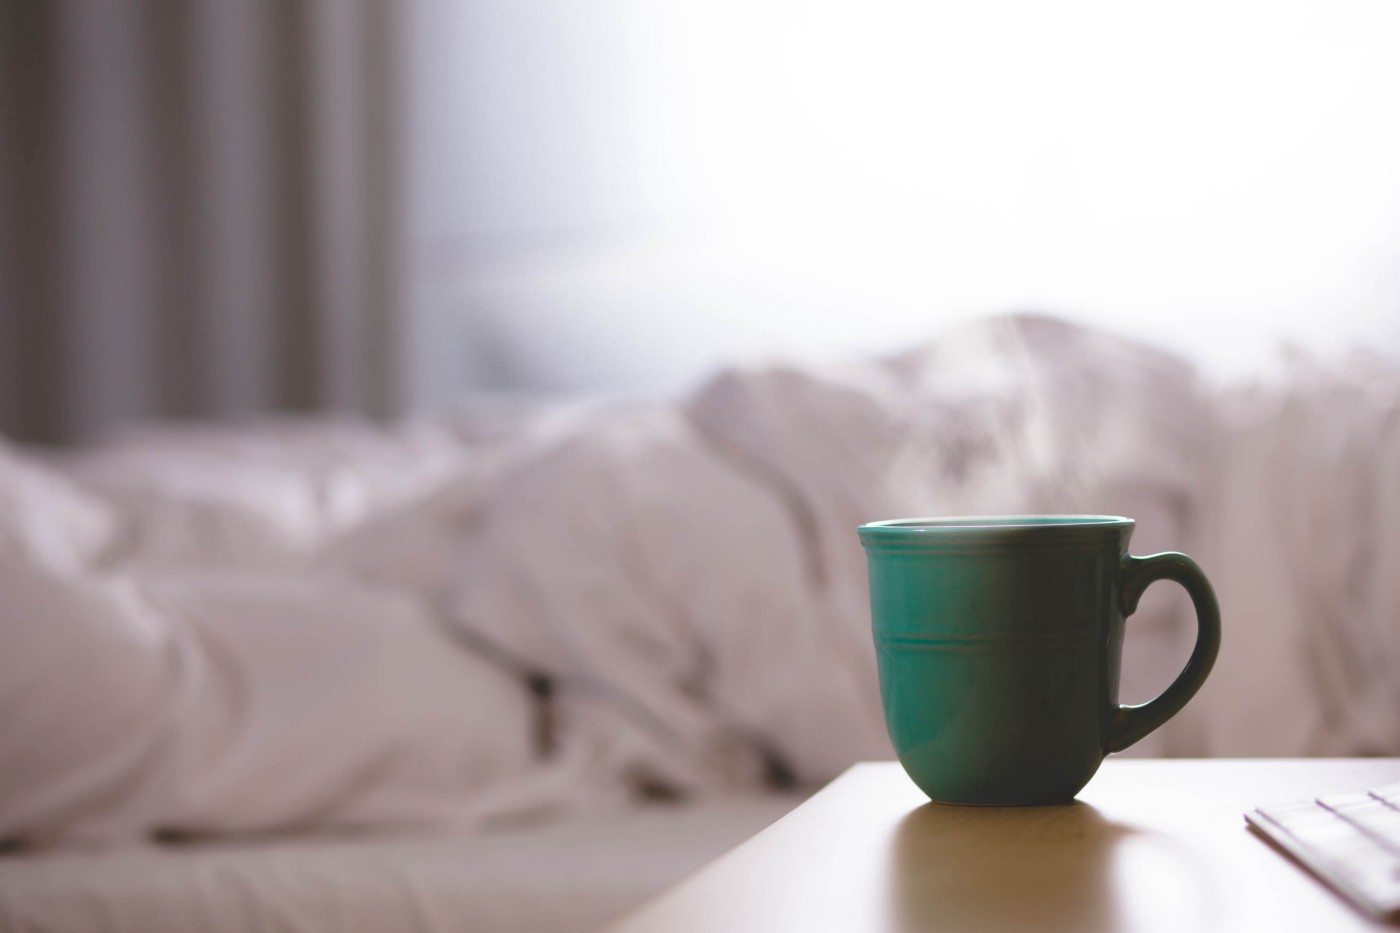 A green cup on a bedside counter in the foreground. Ruffled bedsheets in the background.